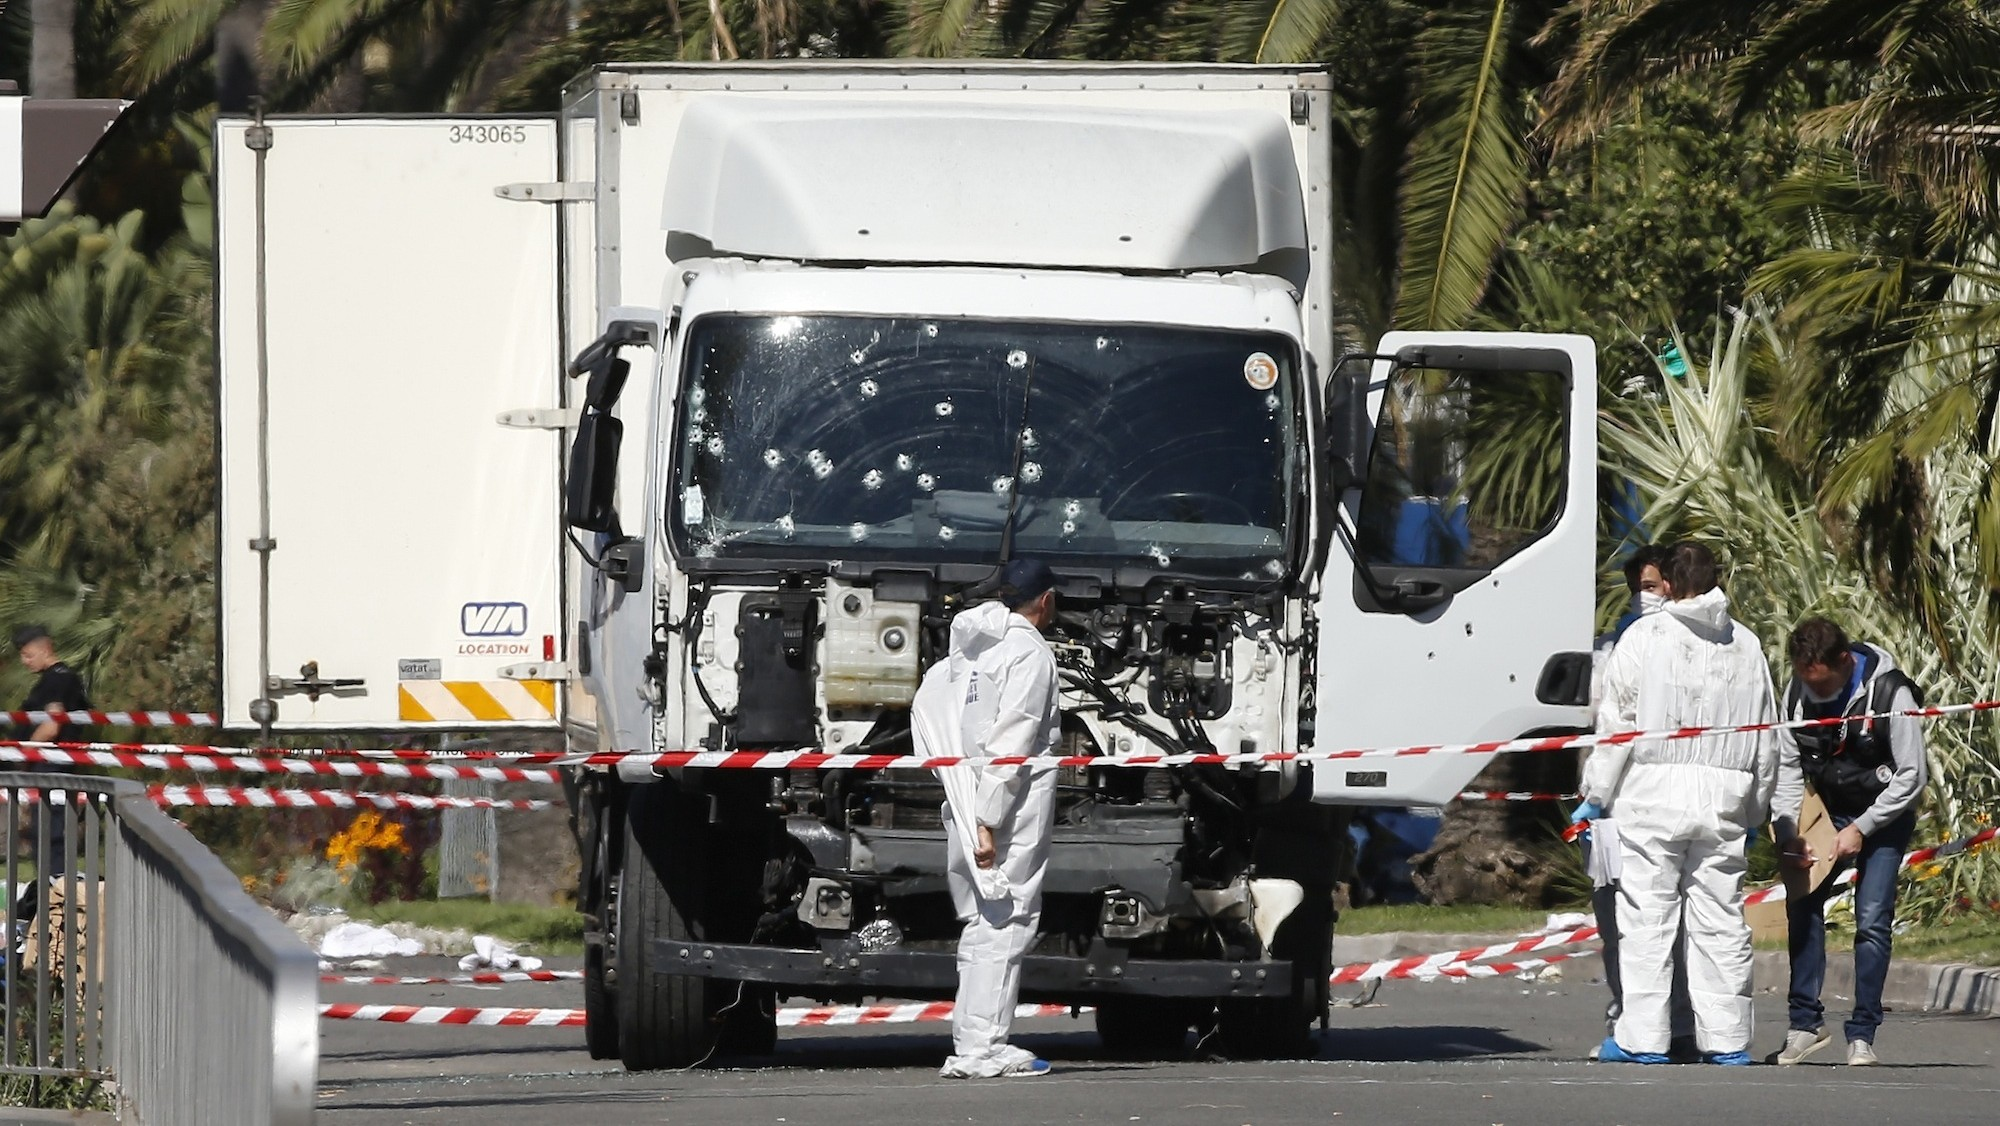 Everything we know so far about the Bastille Day truck attack in Nice, France